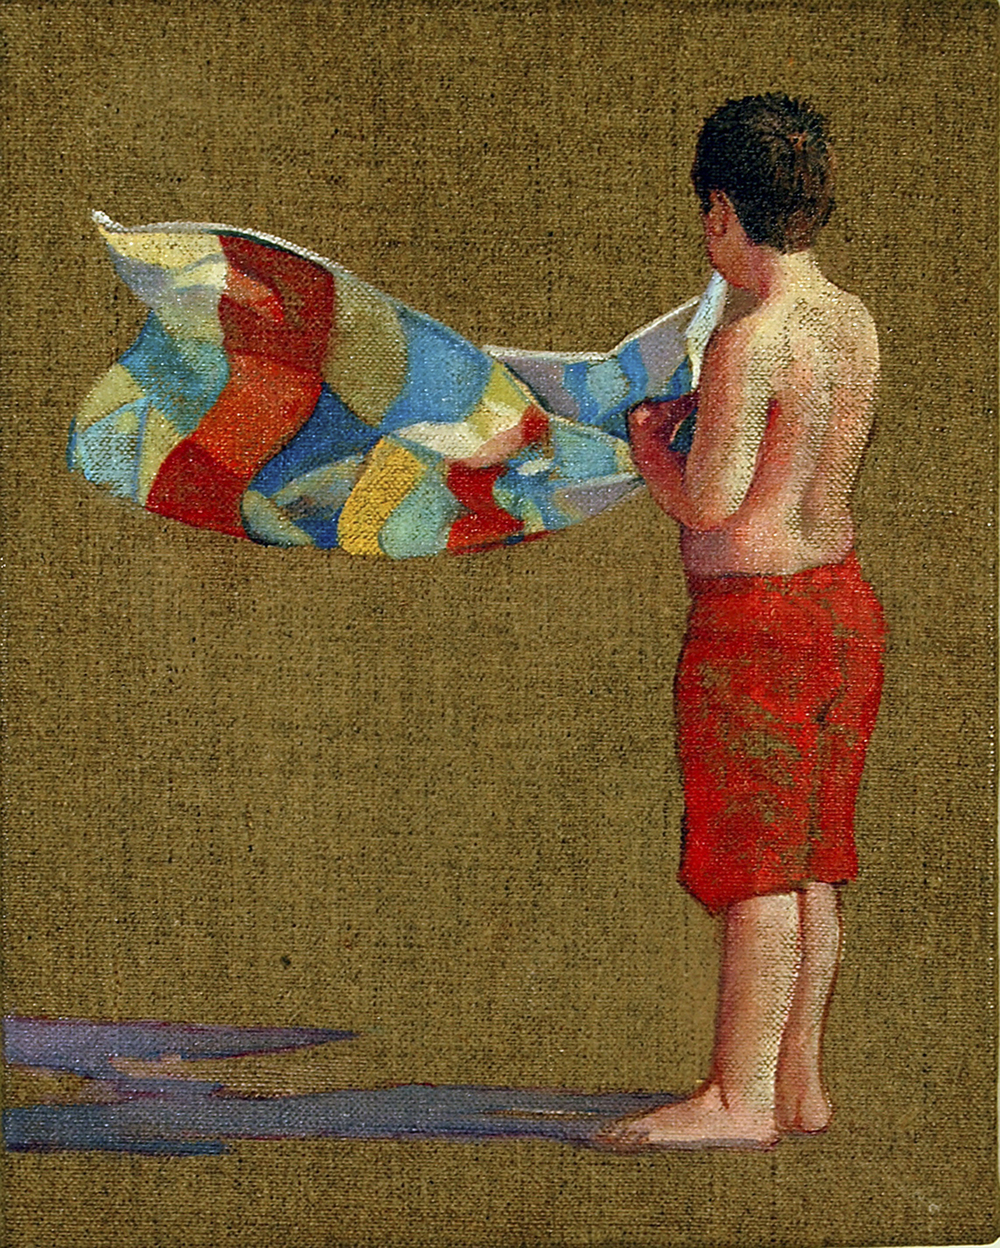 Towel Four oil on linen 10x8, 2009